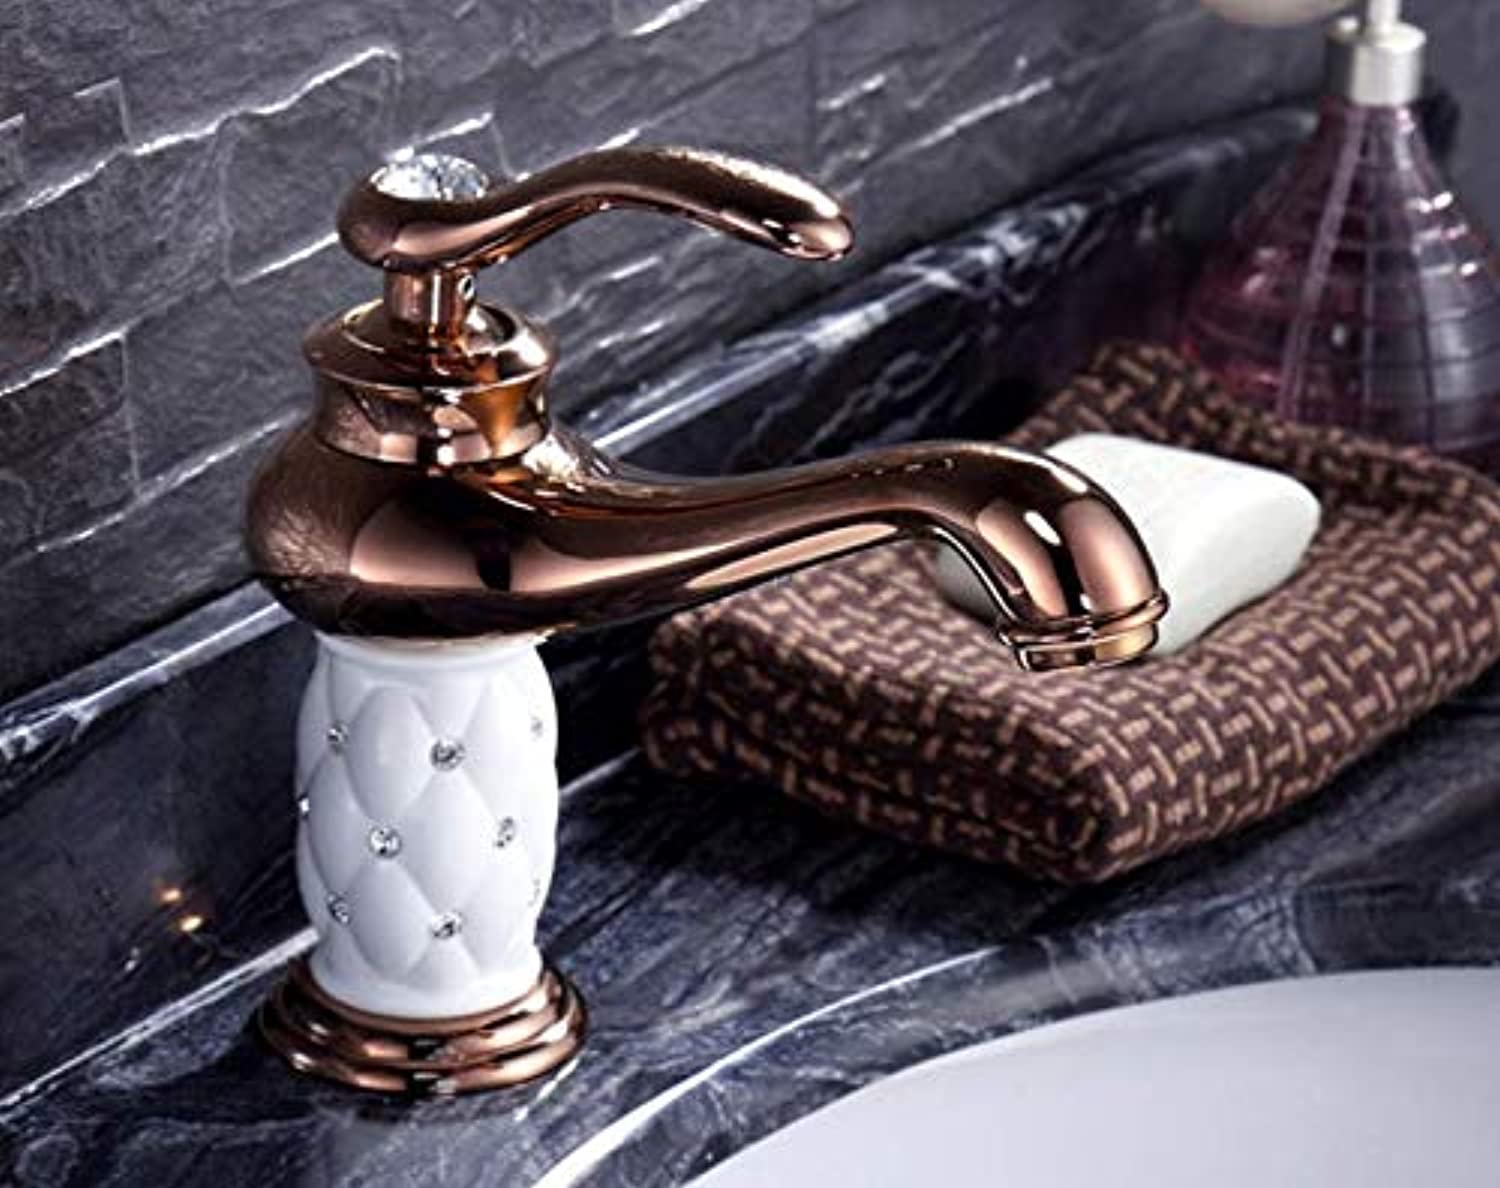 Faucet hot and Cold Basin wash Basin Hand Basin Bathroom Copper European pink gold Crystal Diamond White Paint